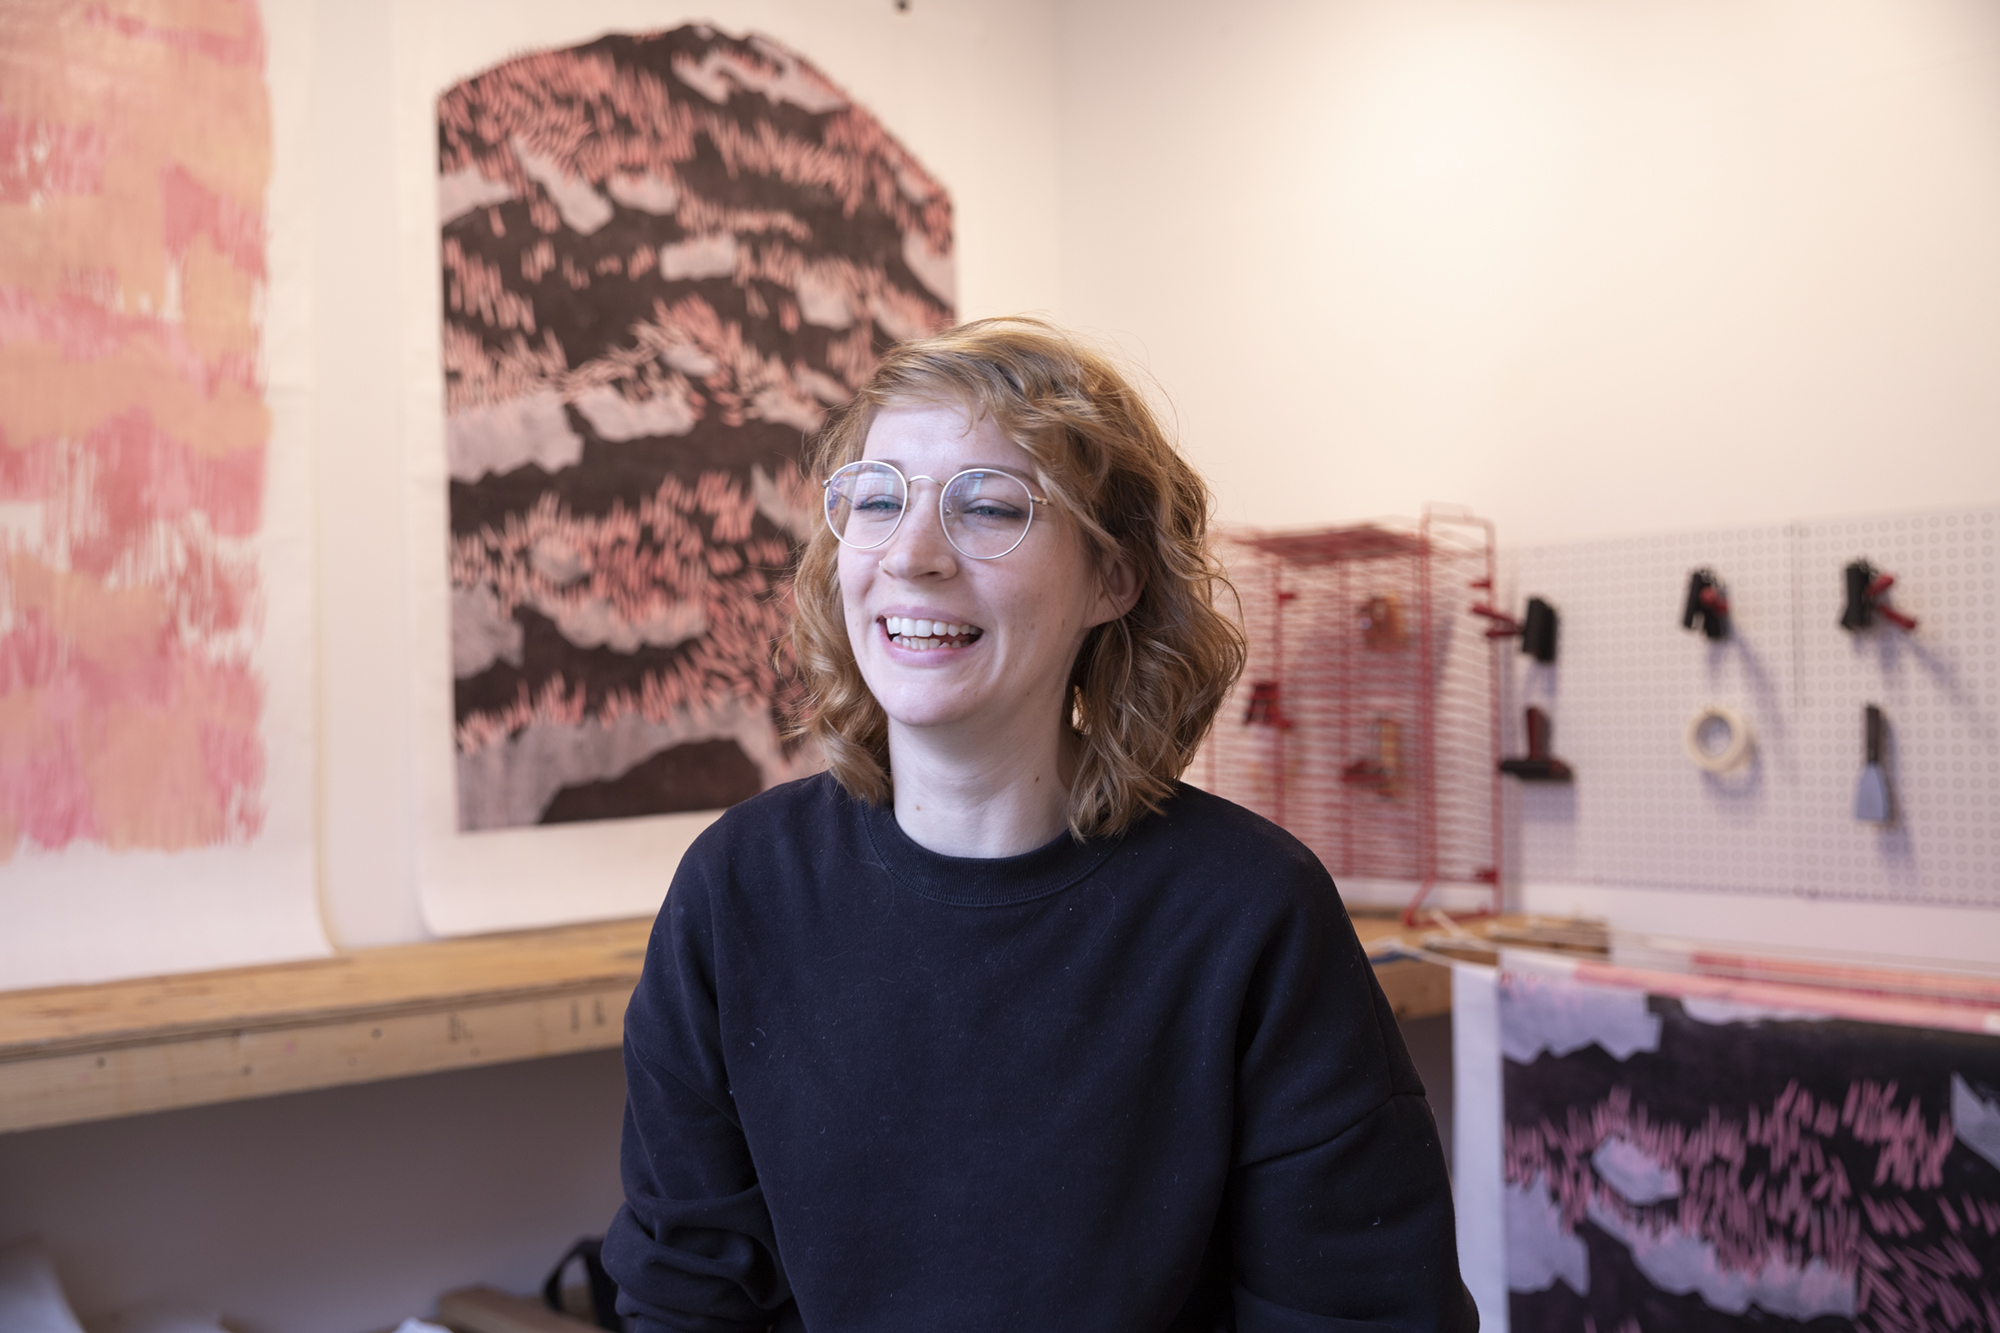 Allison Conley - 2019/Winter Artist-in-Residence in IPCNY's workshop